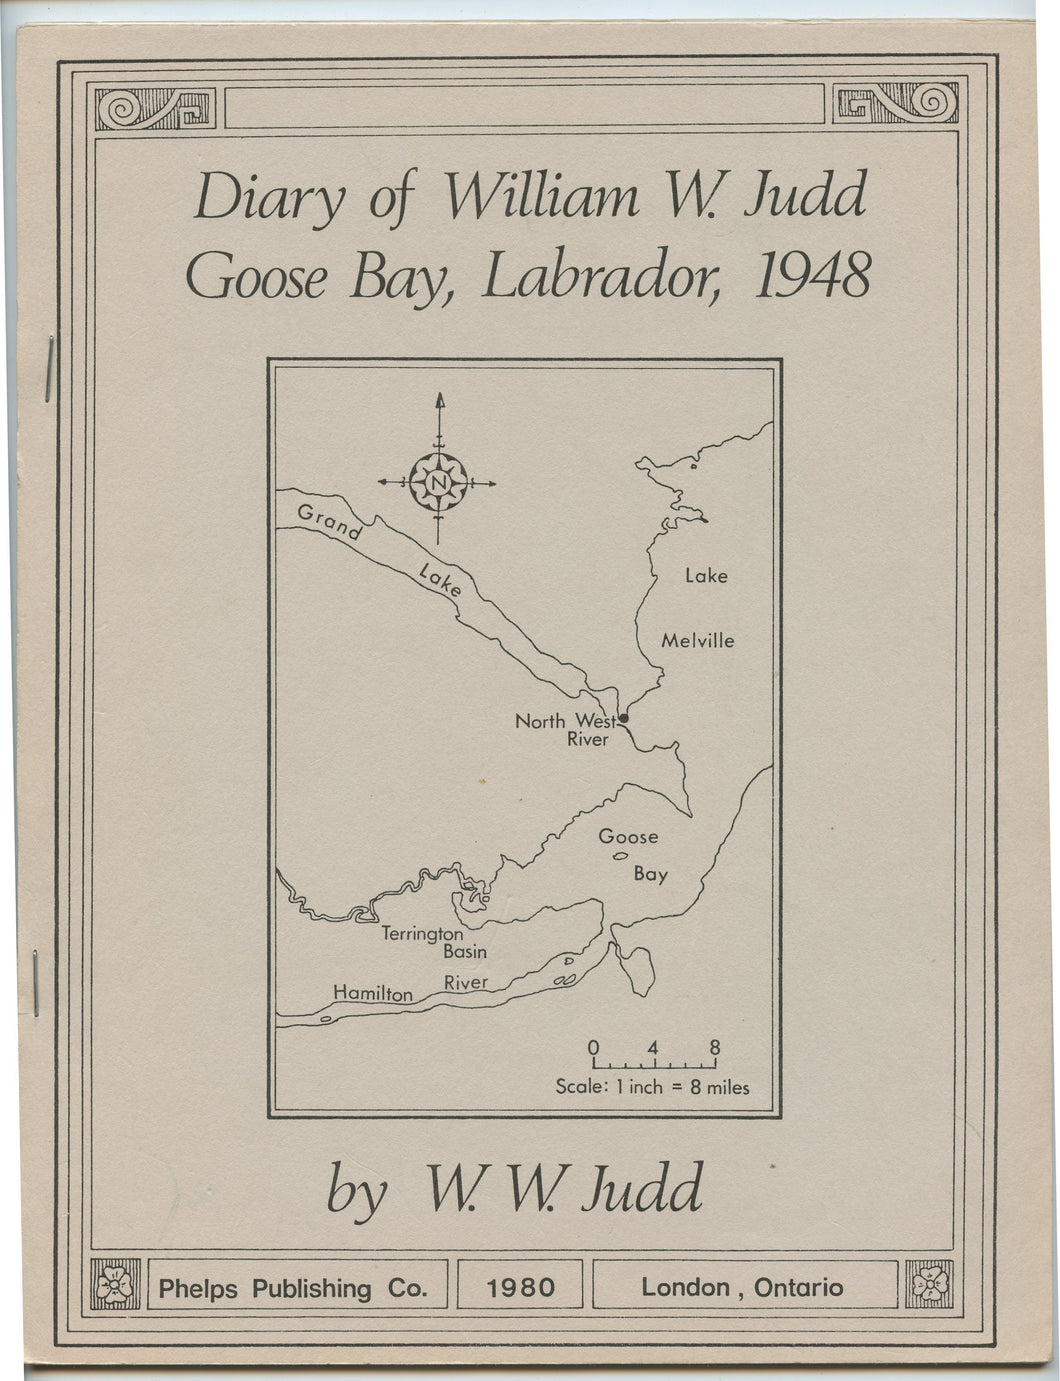 Diary of William W. Judd, Goose Bay, Labrador, 1948